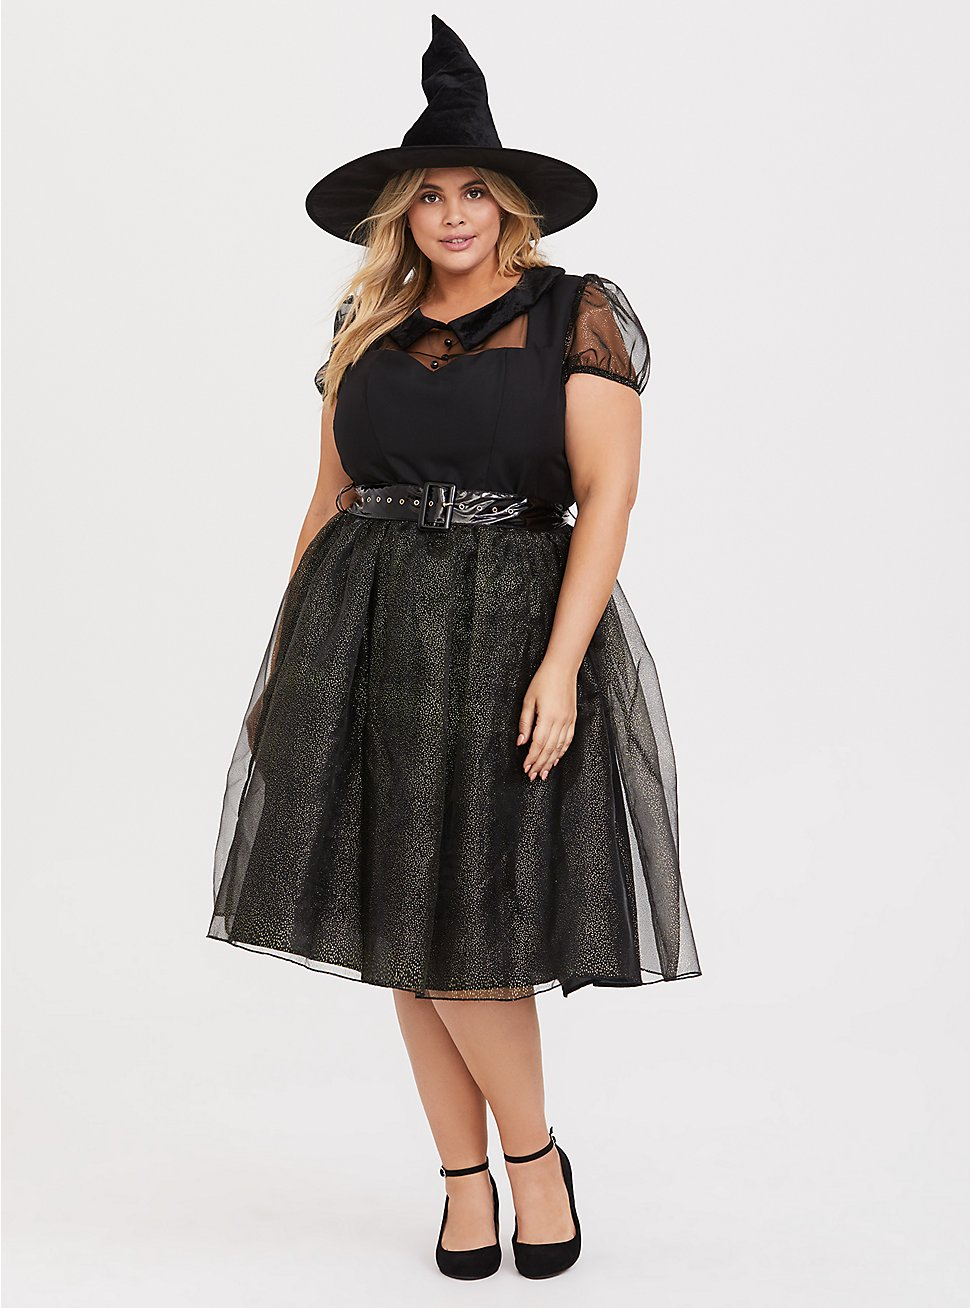 Plus Size Leg Avenue Darling Spell Caster Halloween Costume, BLACK, hi-res